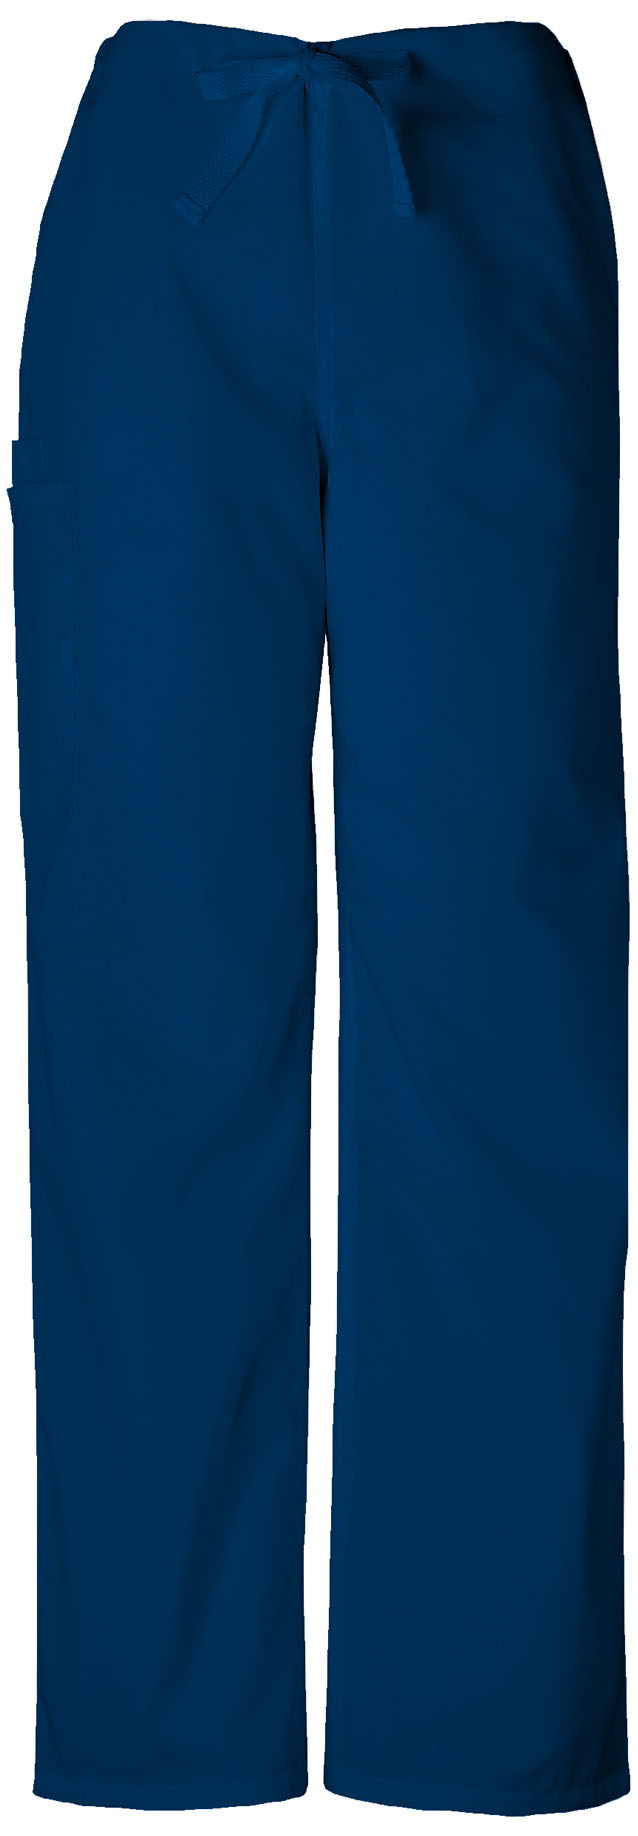 Unisex Drawstring Pants-Cherokee Medical